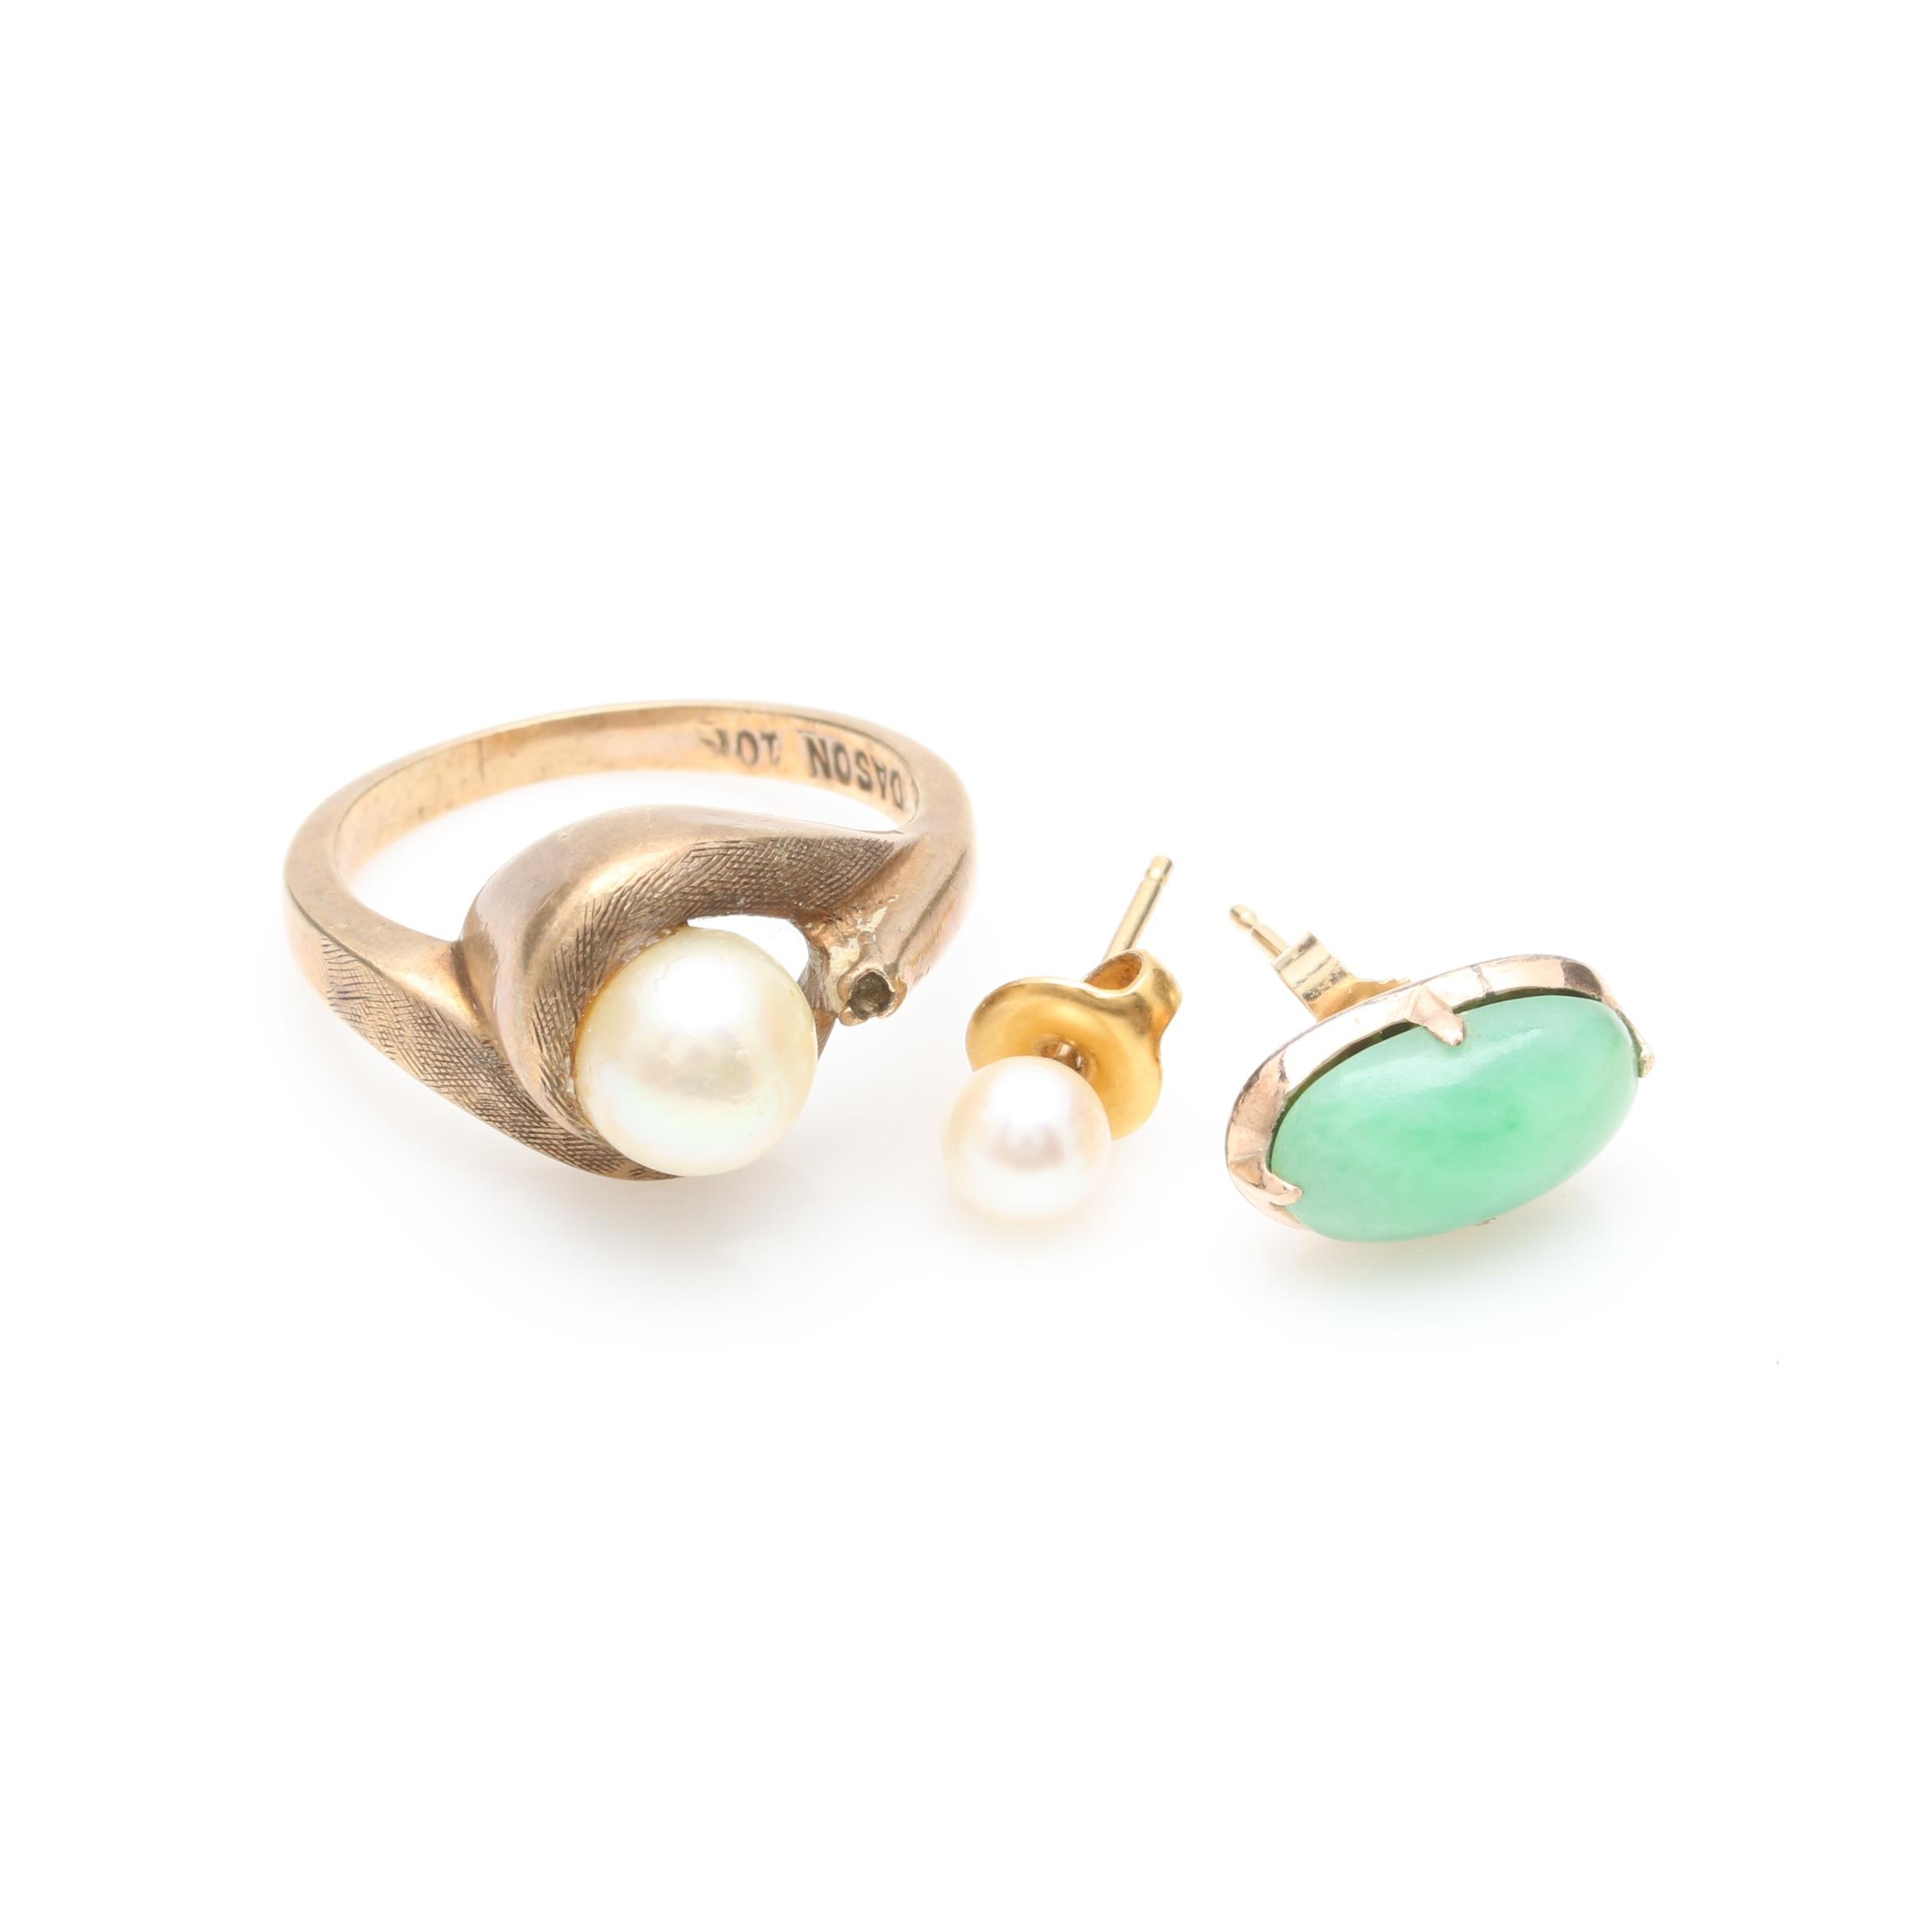 10K and 14K Yellow Gold Cultured Pearl and Dyed Jadeite Earrings and Ring